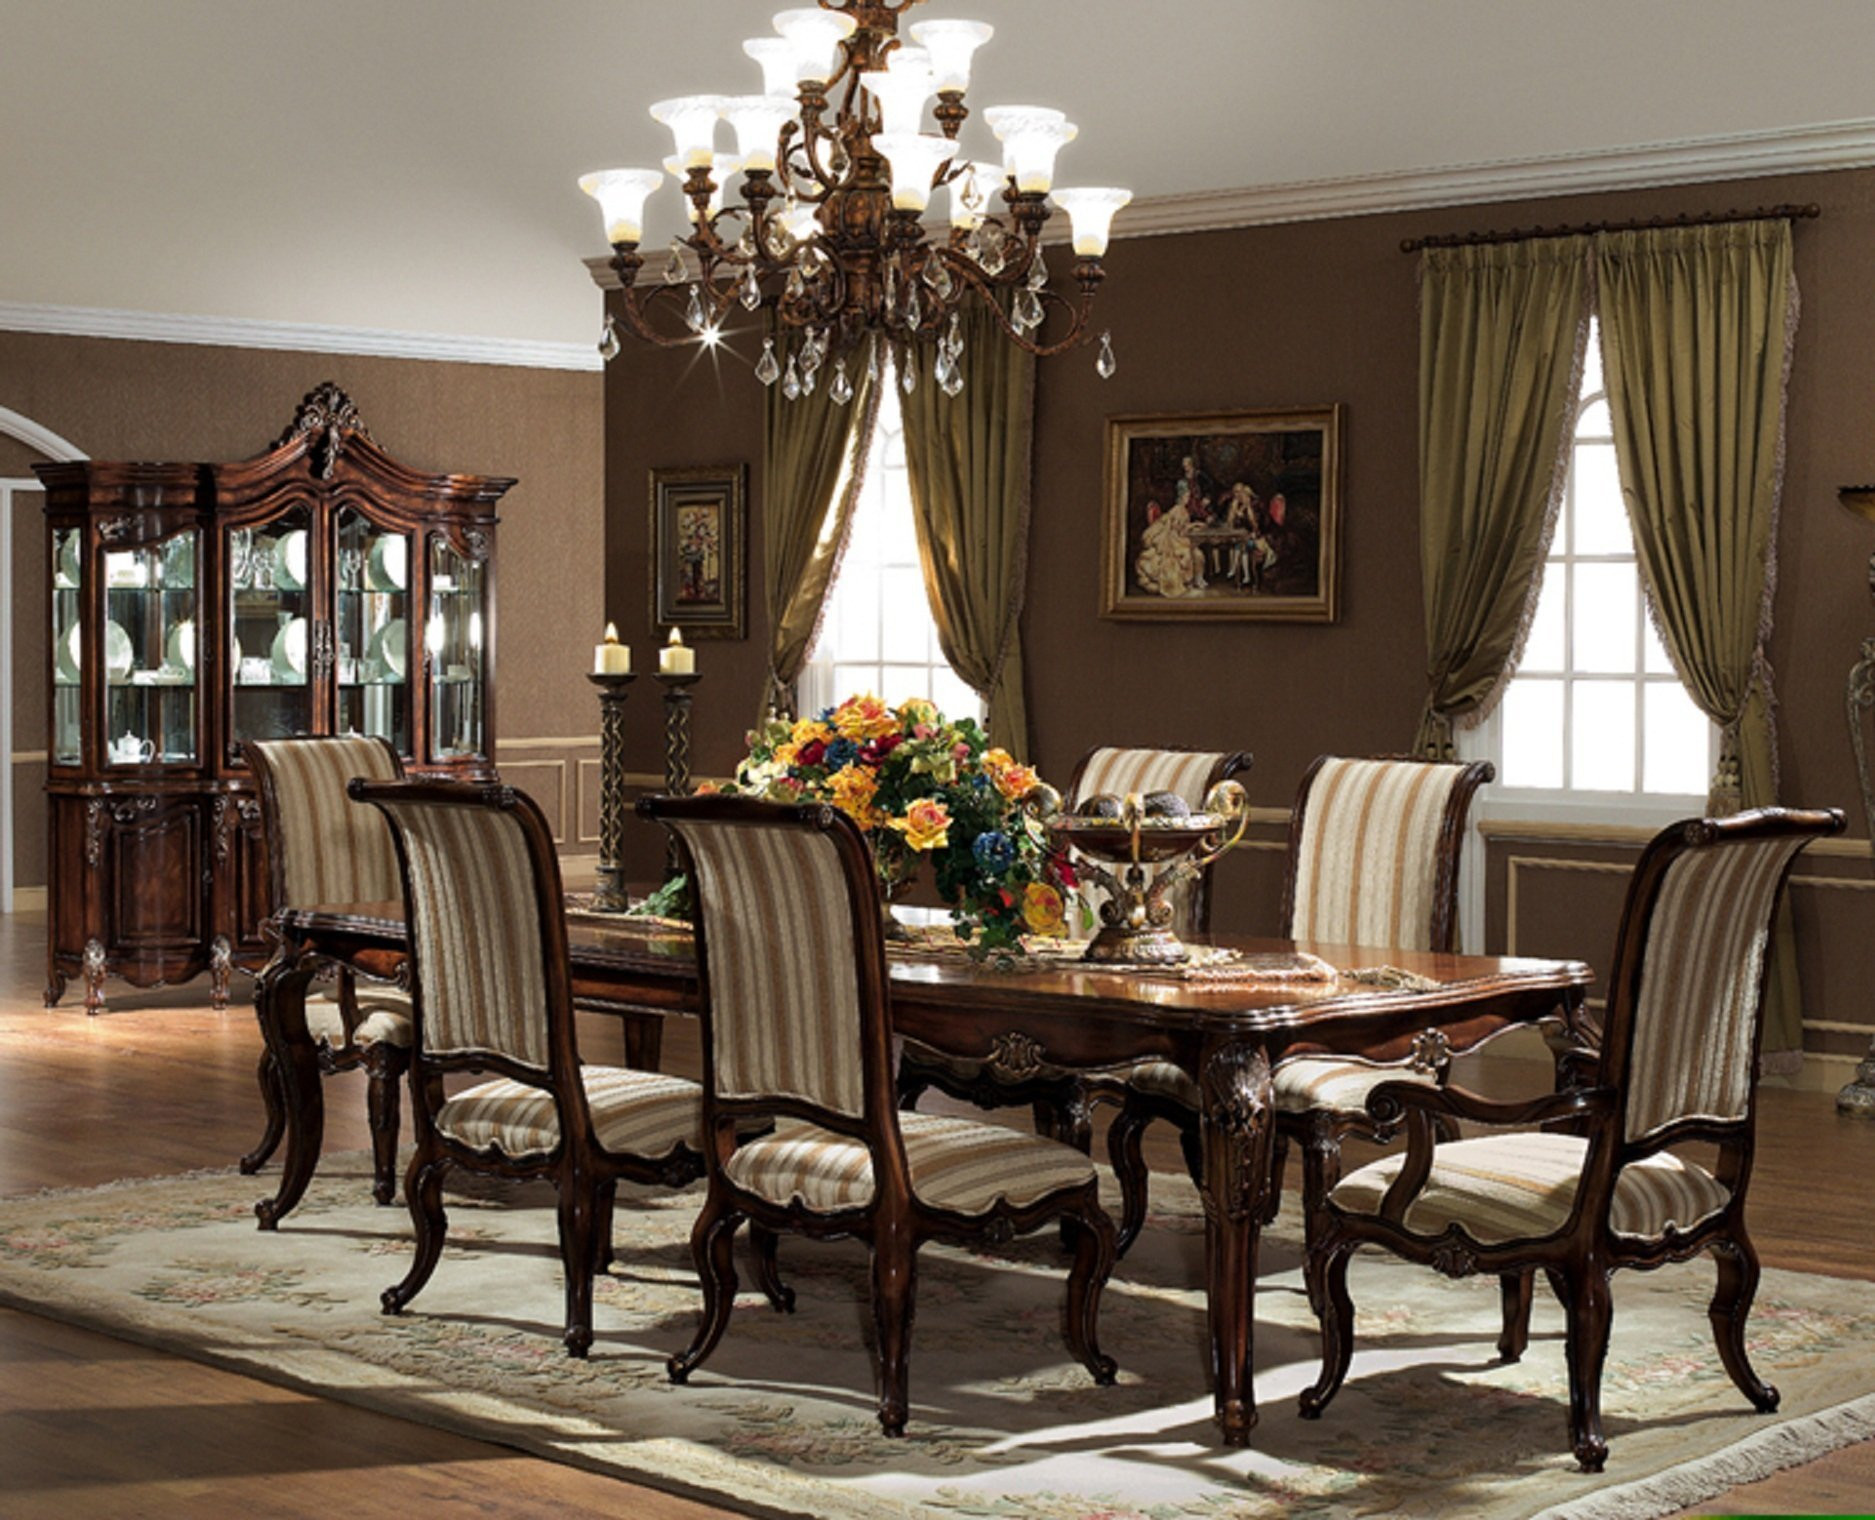 Best ideas about Dining Room Set . Save or Pin Modern Formal Dining Room Sets Now.